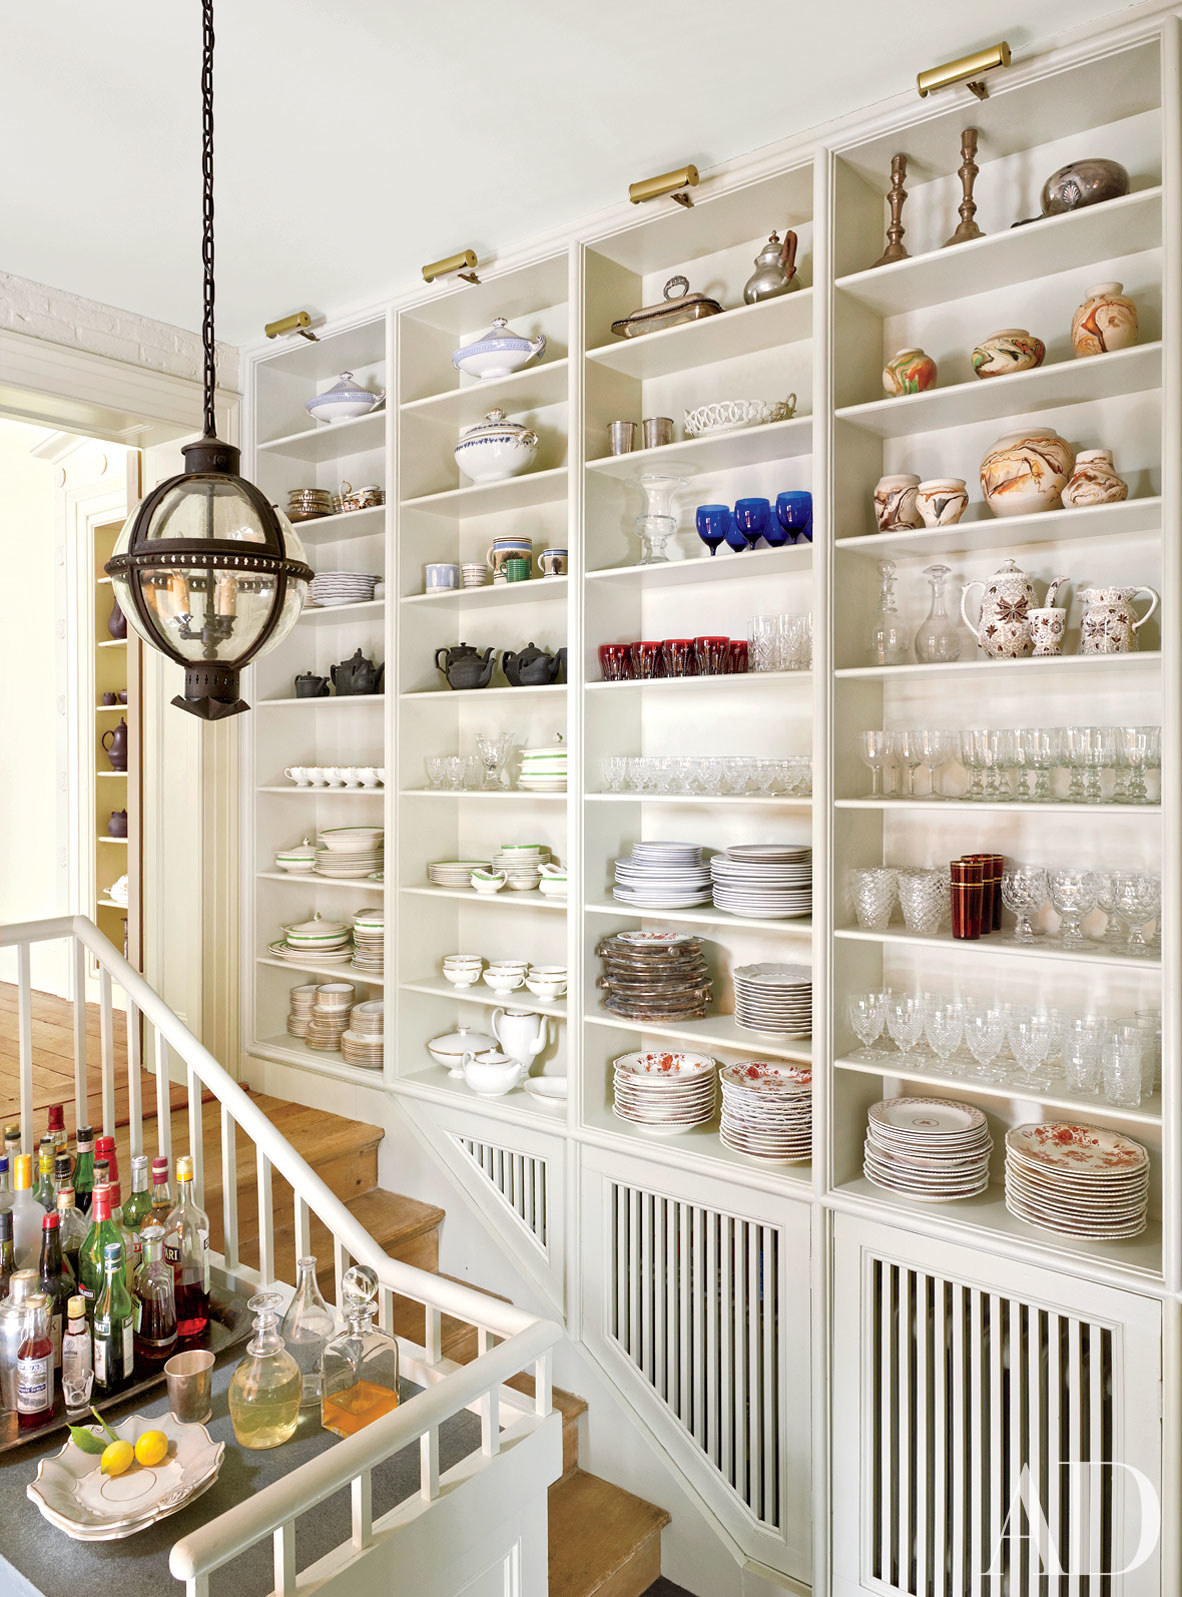 Cucina Restaurant Kohler How To Create A Seriously Stylish And Organized